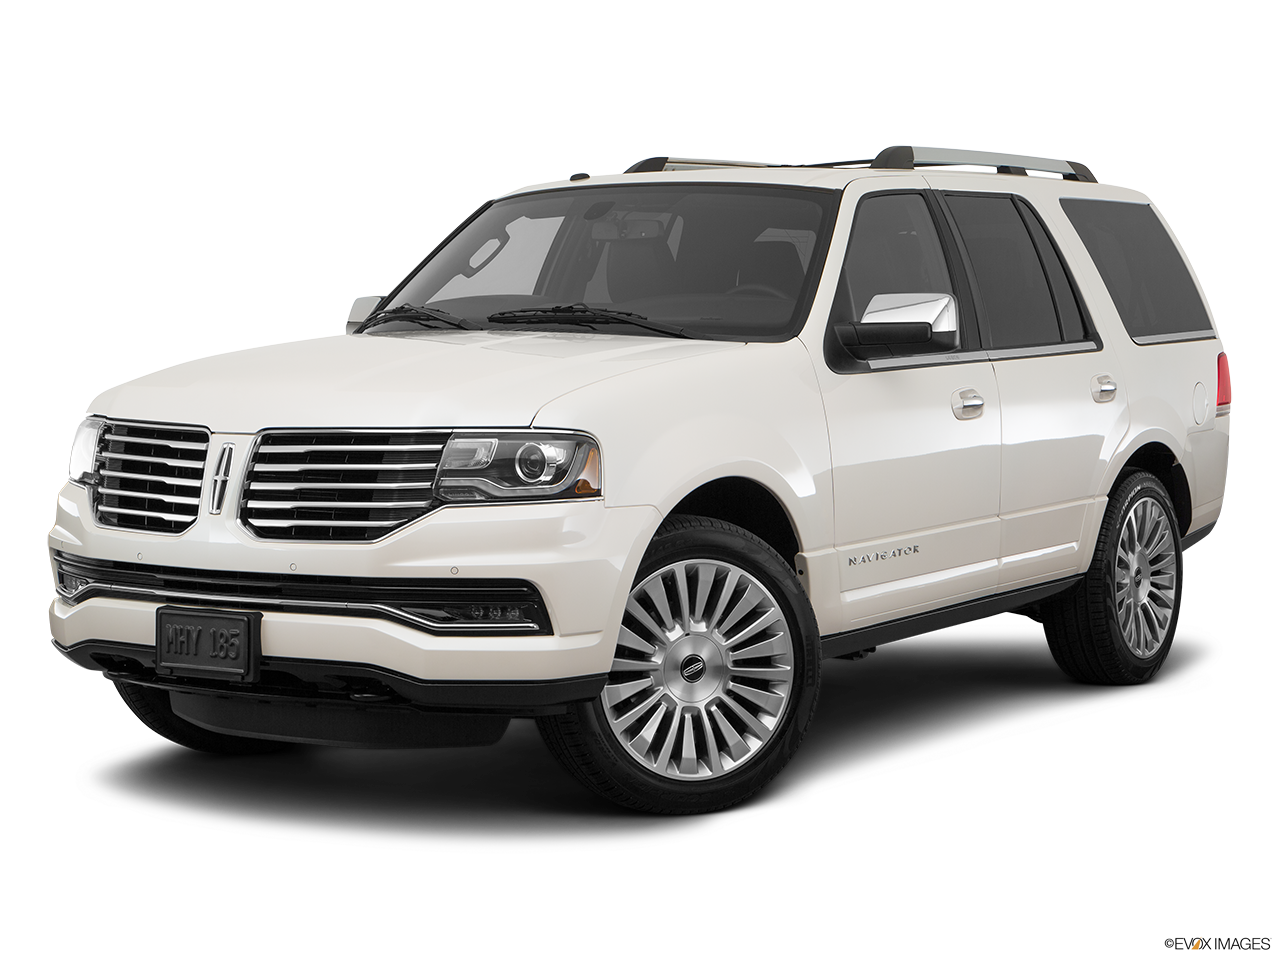 Test Drive A 2017 Lincoln Navigator at Sunnyvale Lincoln in Sunnyvale